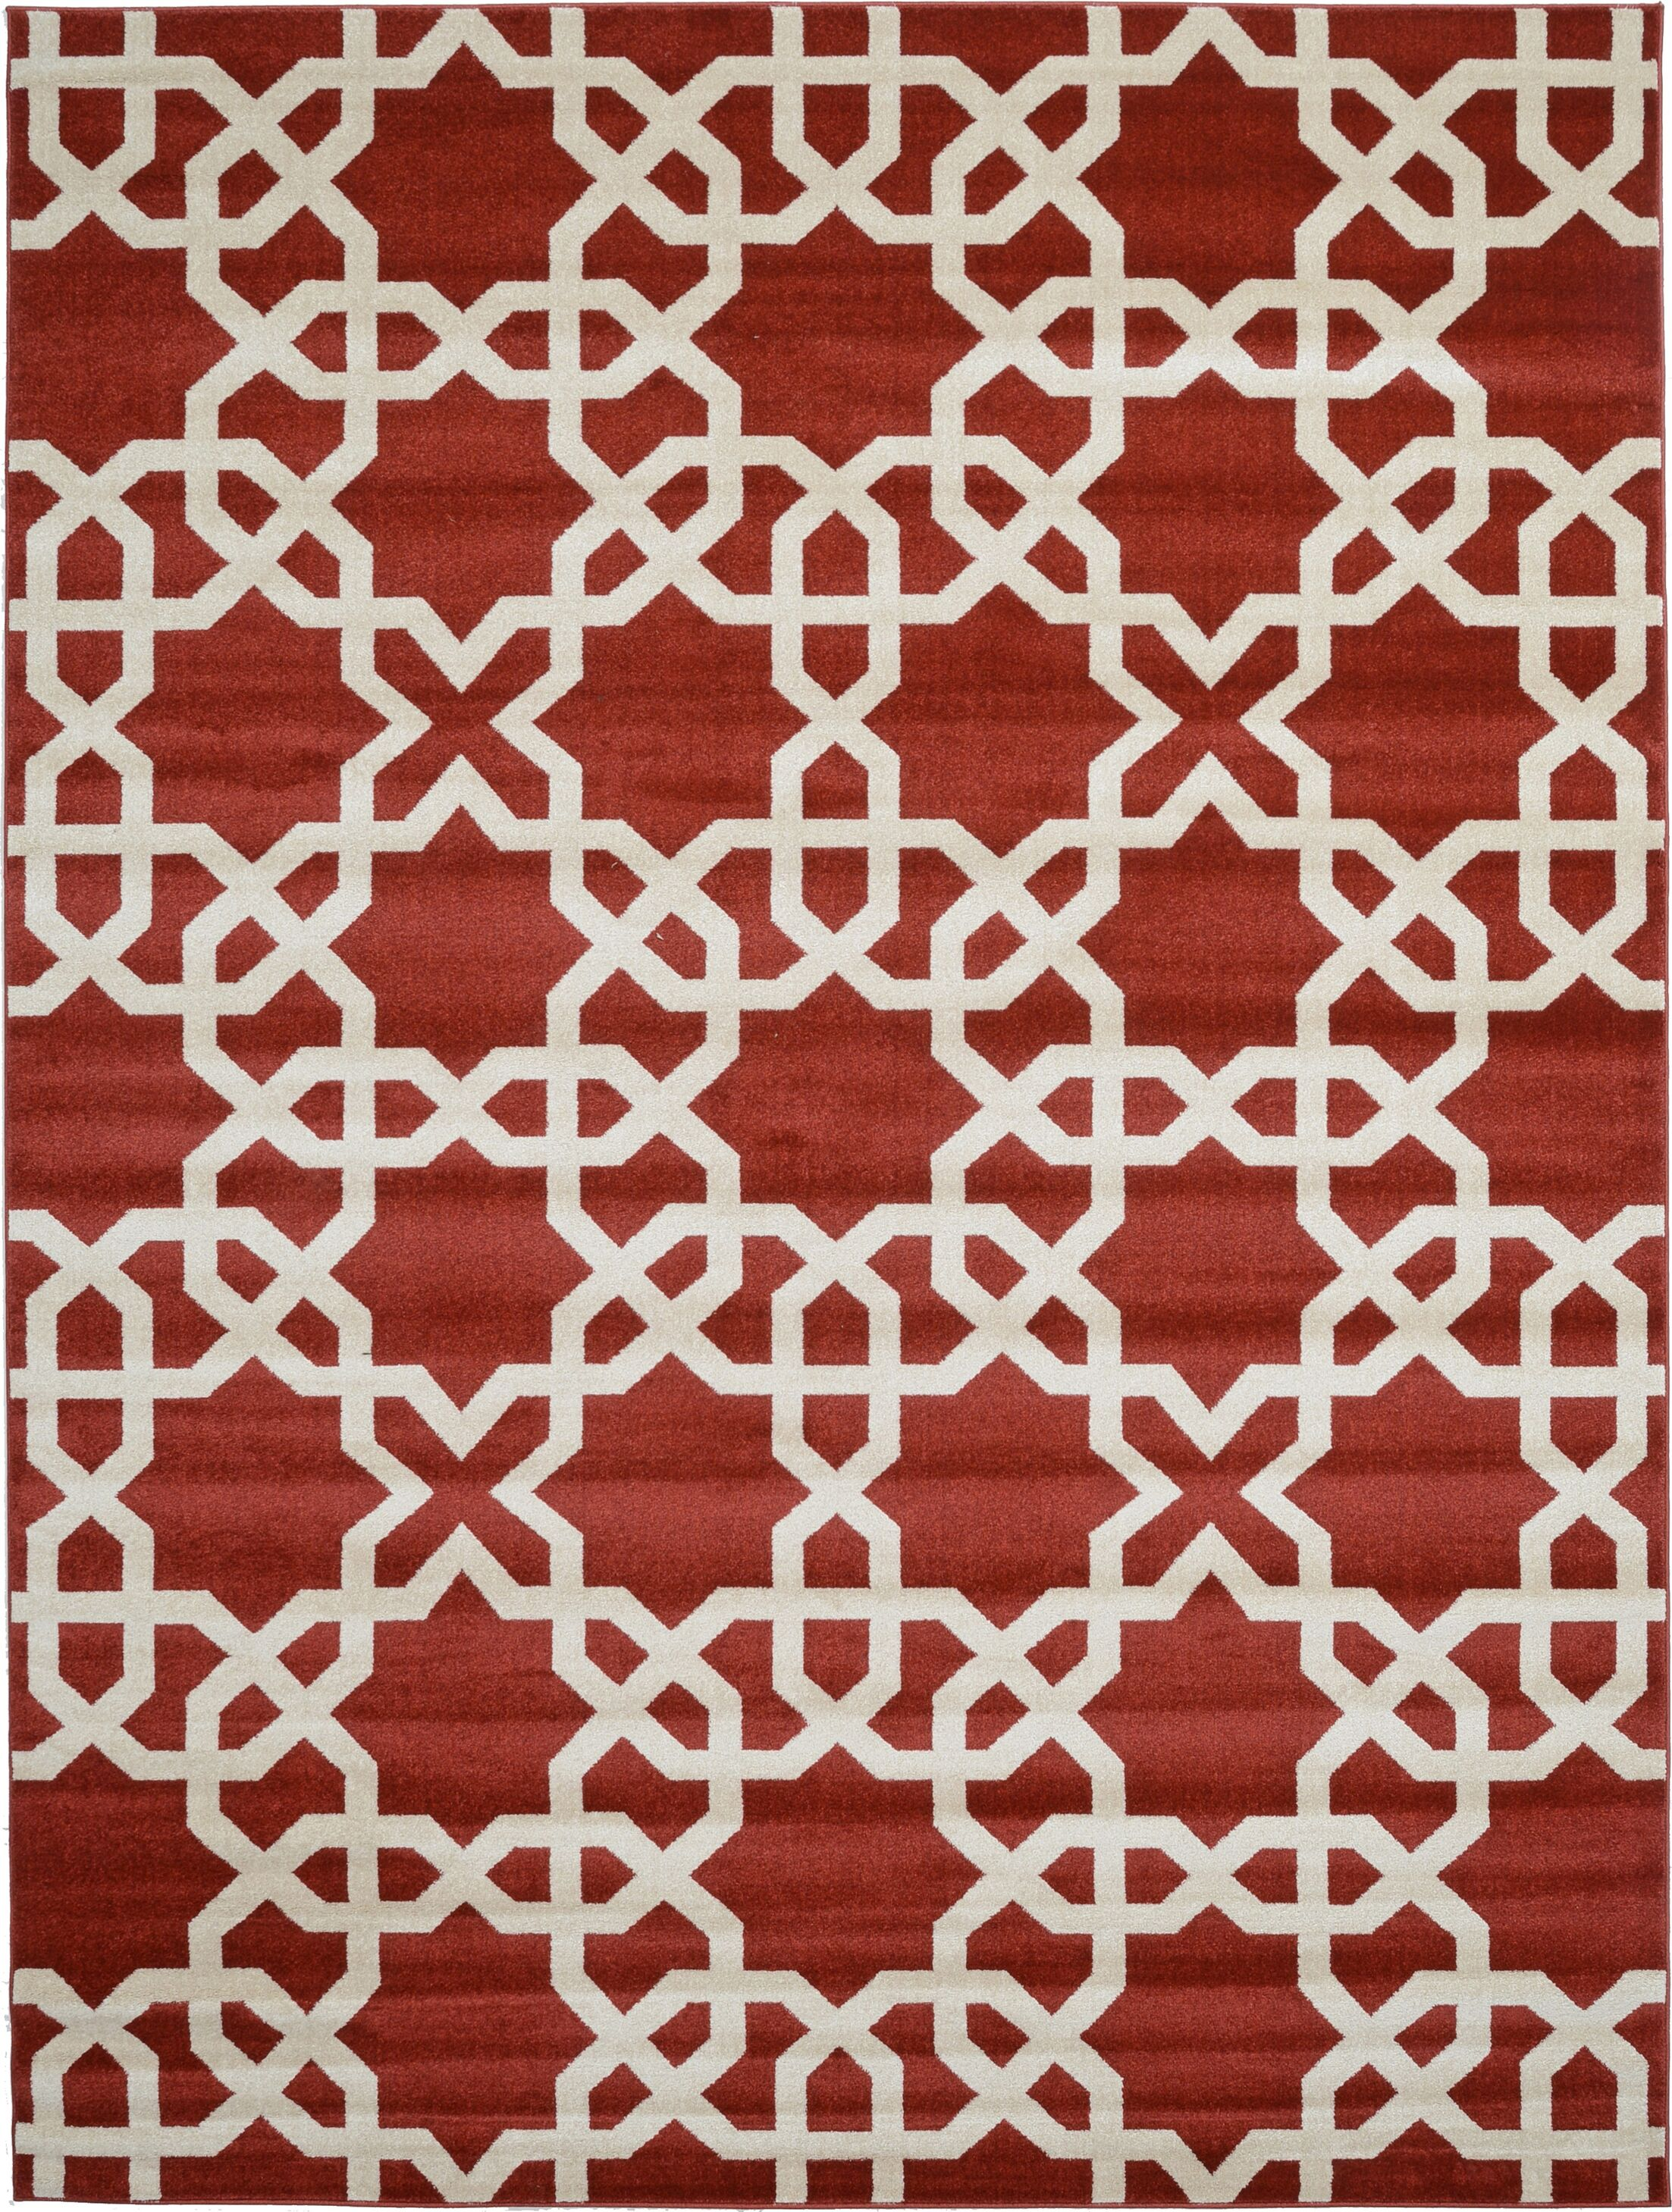 Moore Dark Terracotta Area Rug Rug Size: Rectangle 9' x 12'